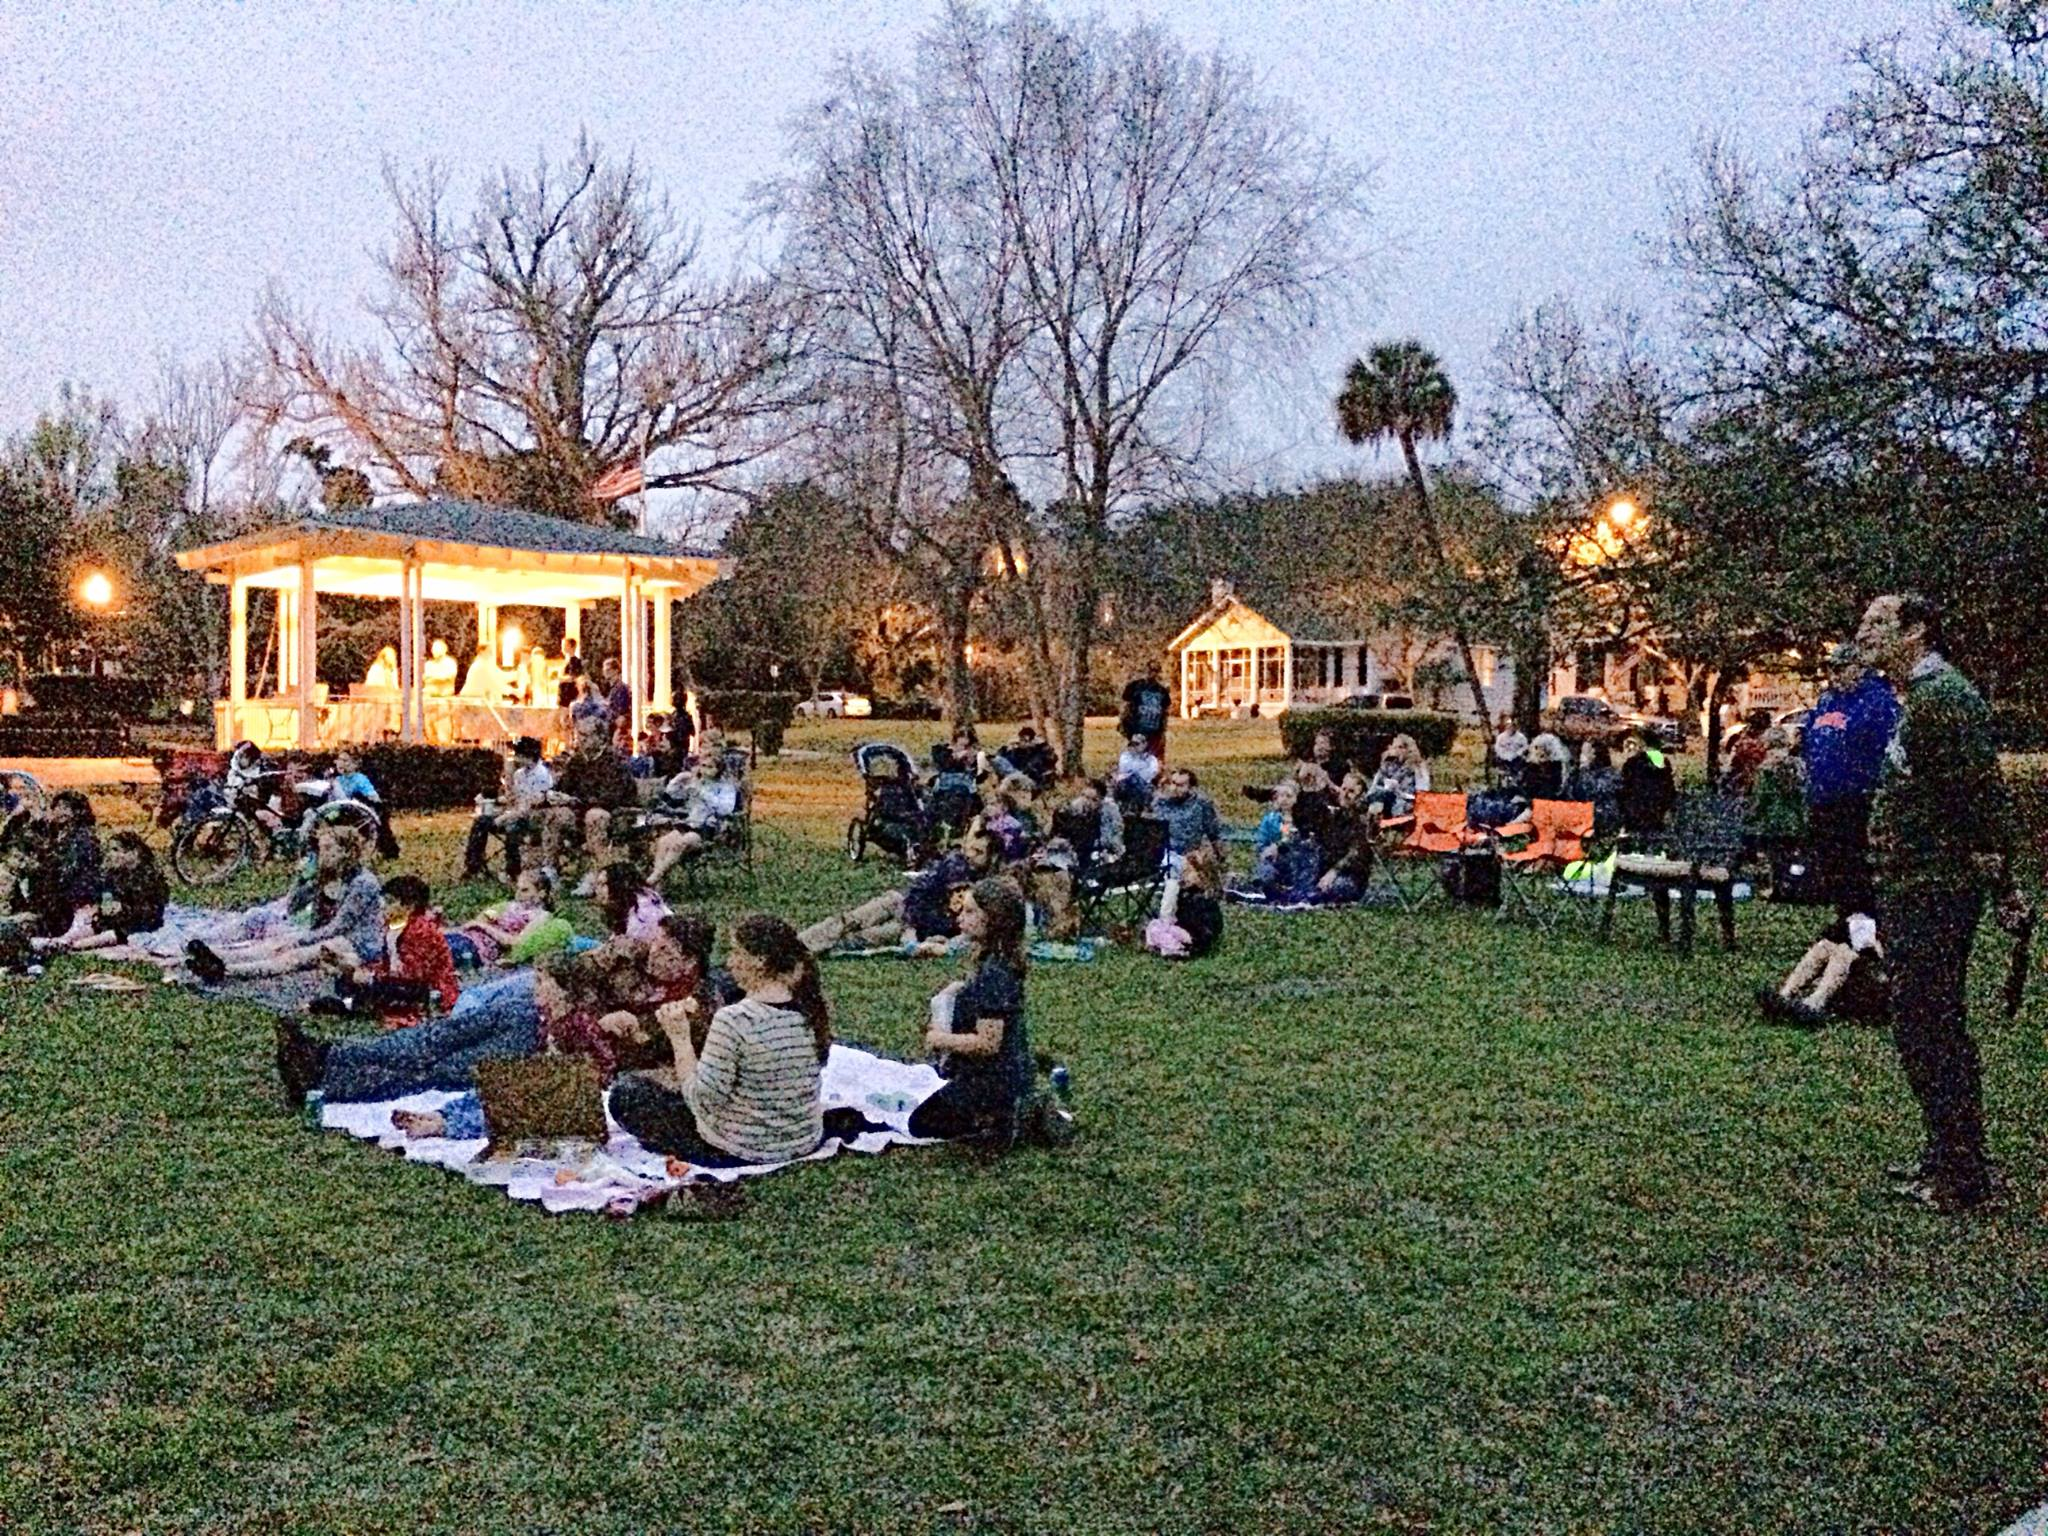 Cinema on the Green in Alabama Square